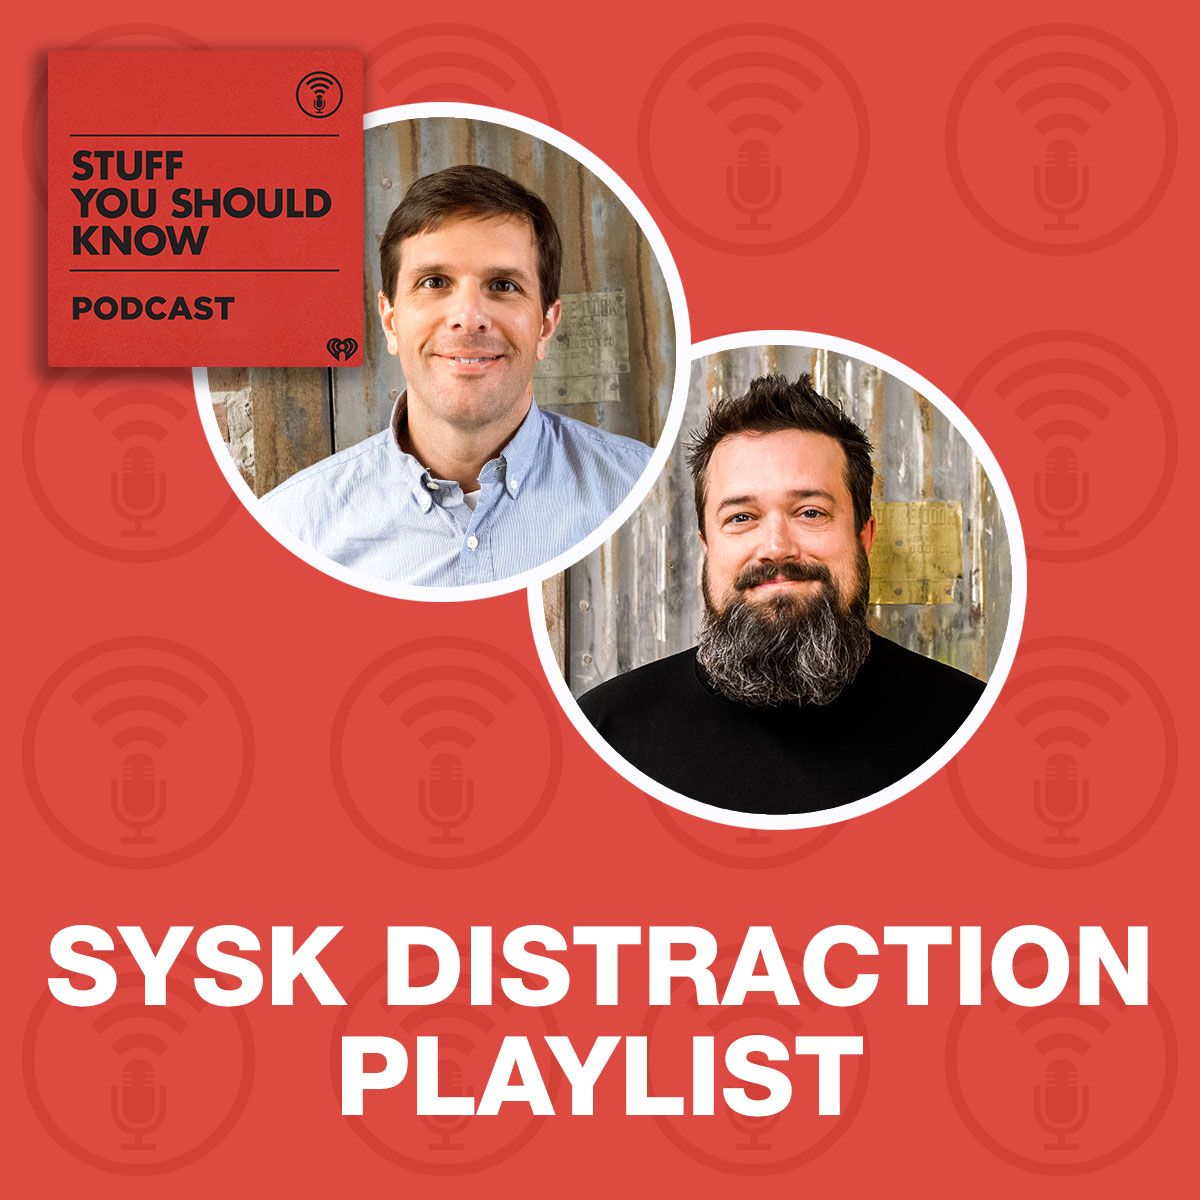 SYSK Distraction Playlist: SYSK Live: How Bars Work